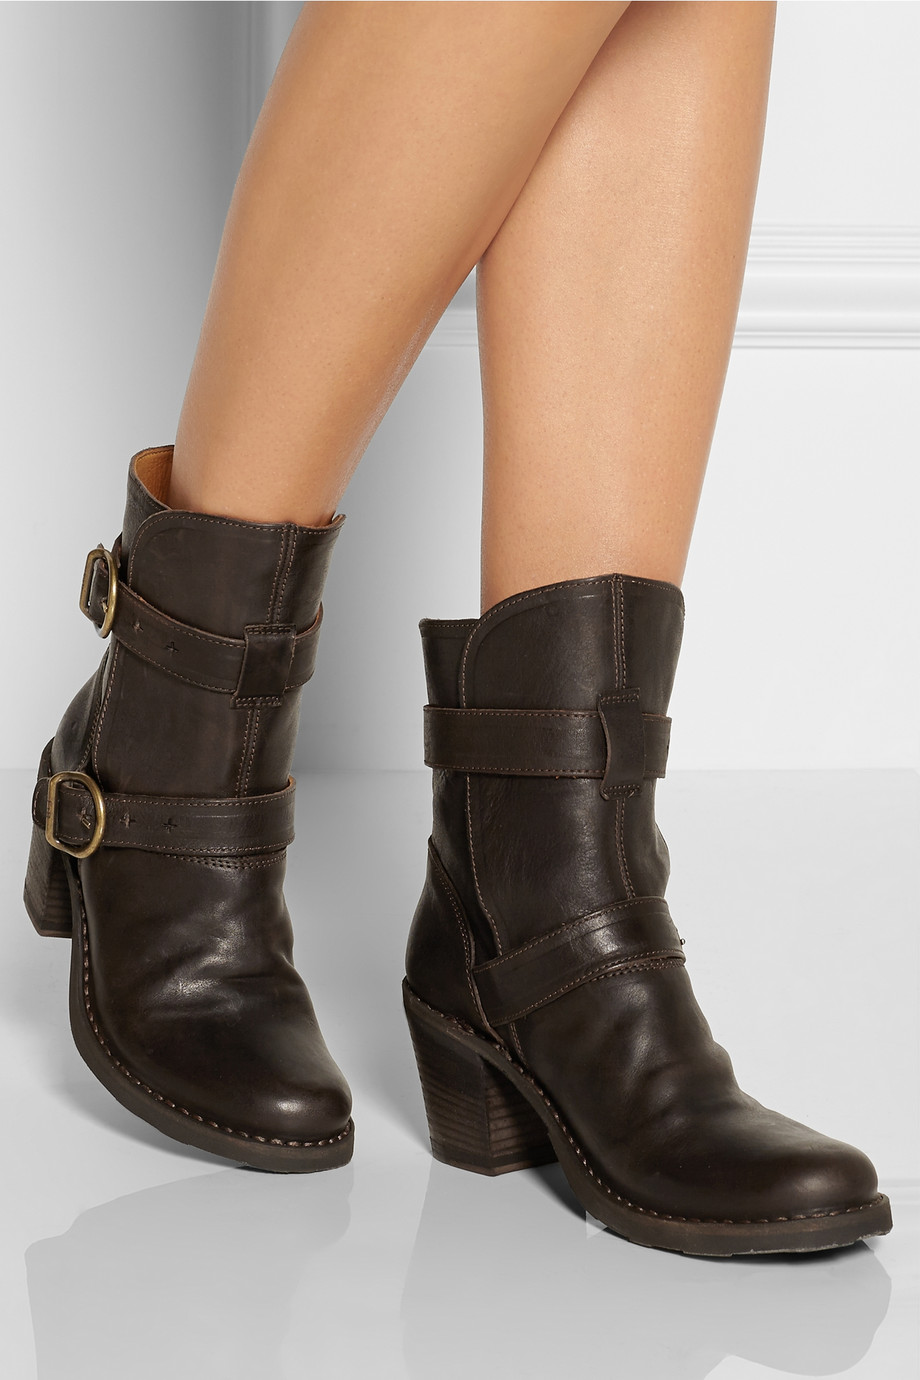 Fiorentini + baker Nena Leather Boots in Brown | Lyst